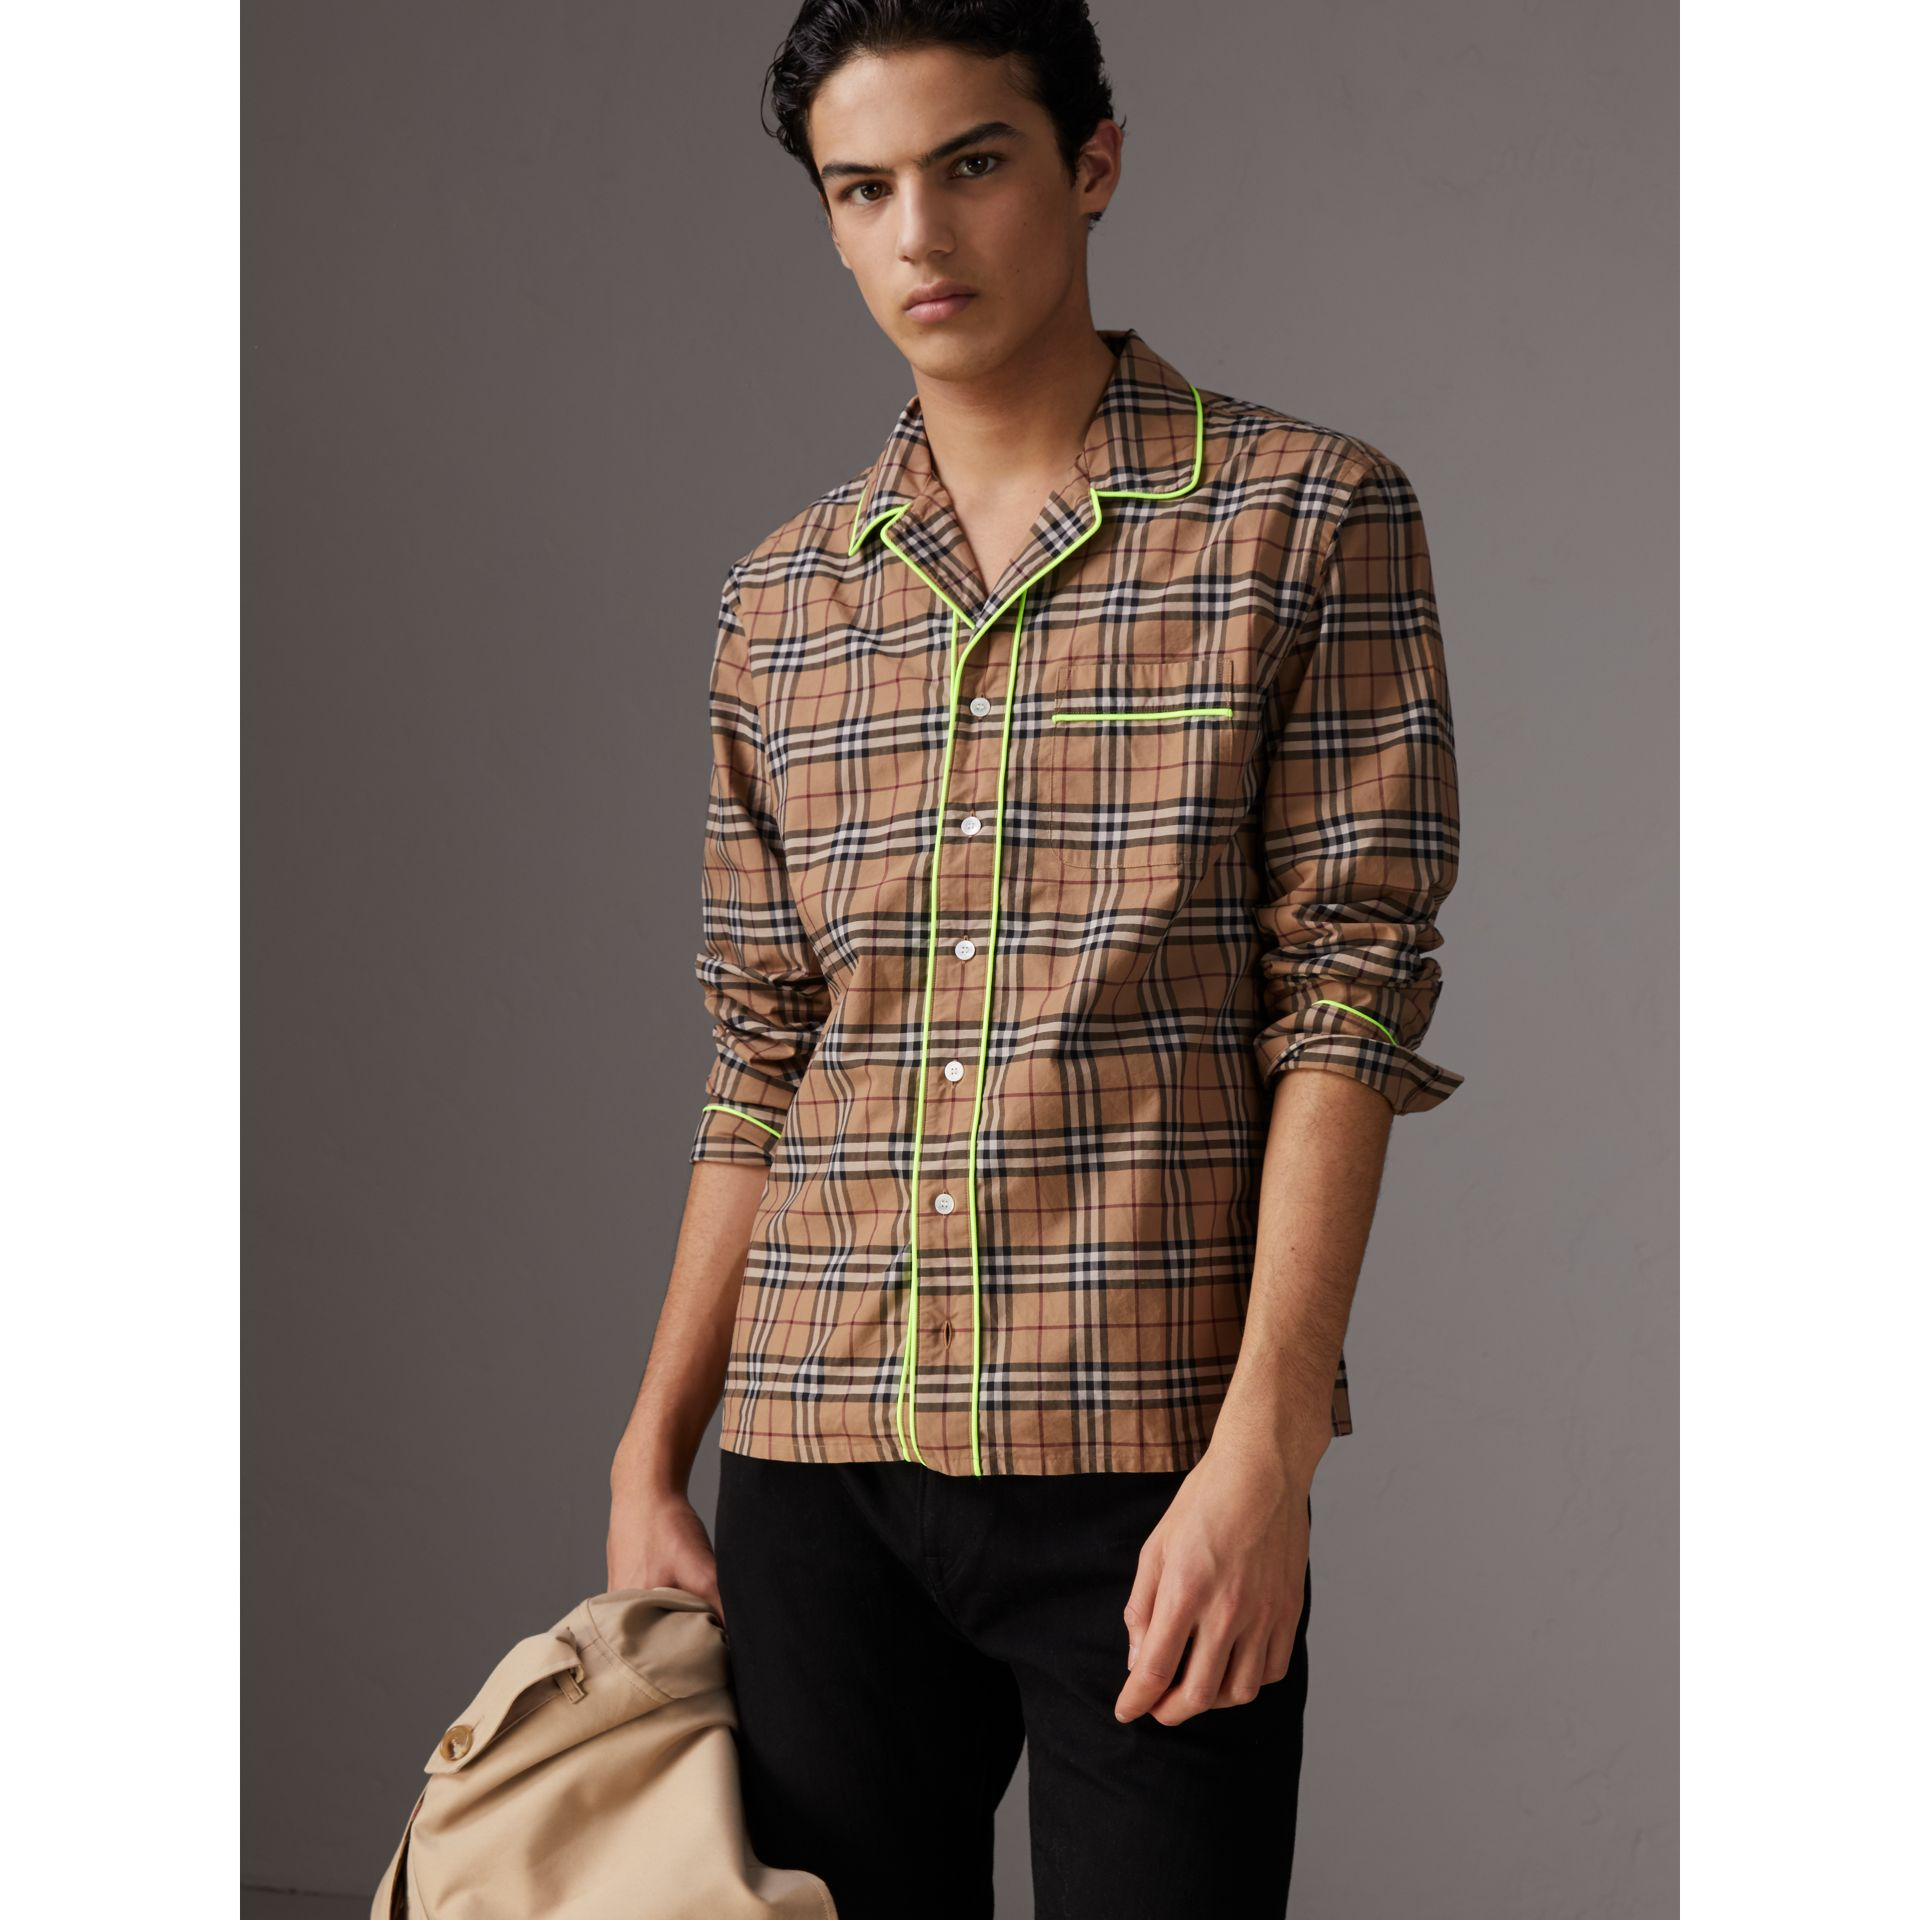 Contrast Piping Check Cotton Pyjama-style Shirt in Camel - Men | Burberry United States - gallery image 4